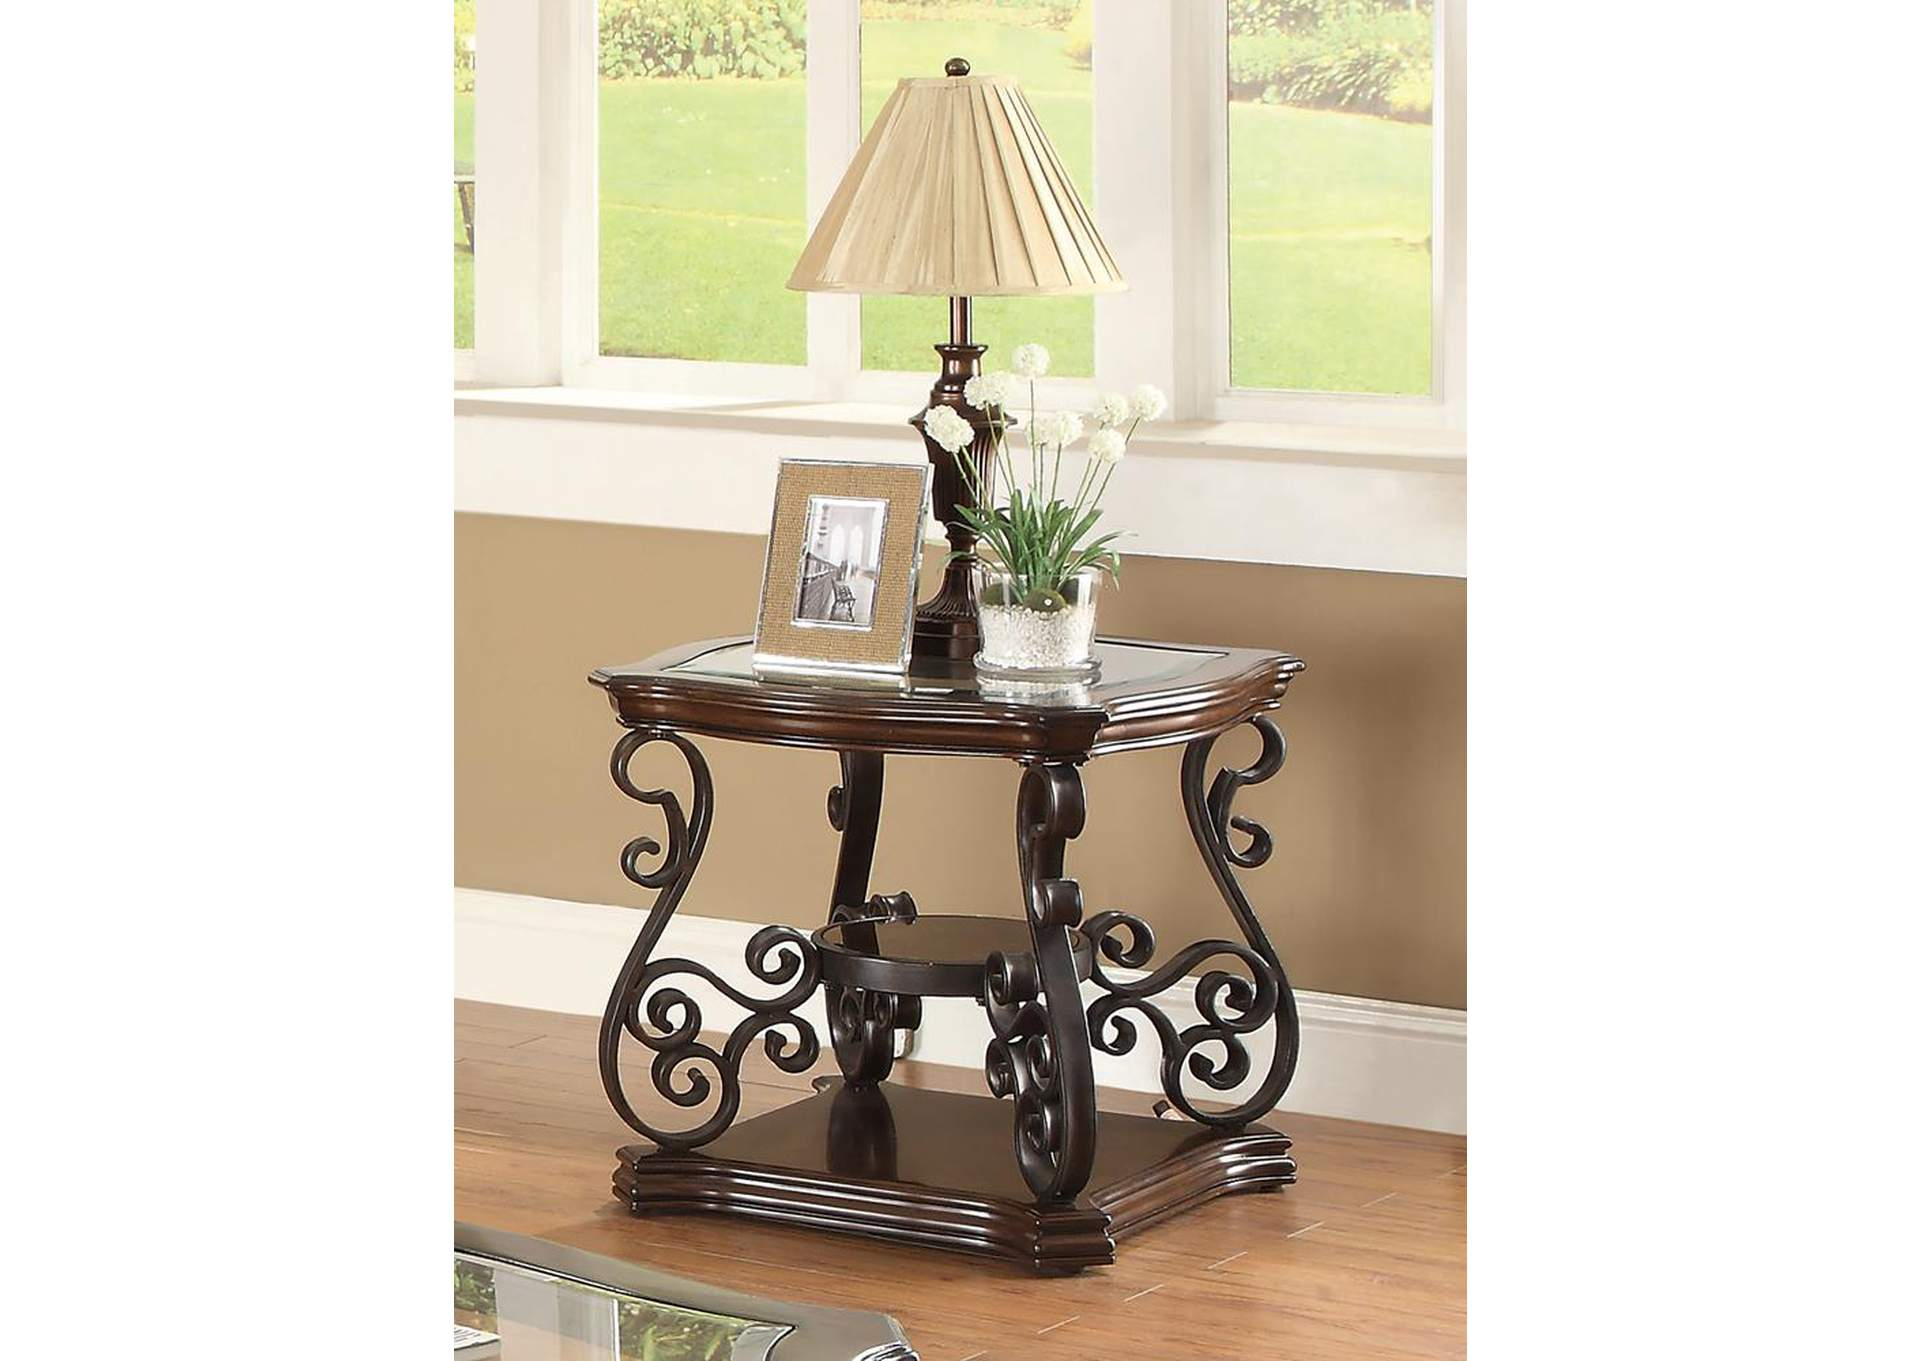 Affordable furniture carpet chicago il mahogany end table for Affordable furniture and carpet